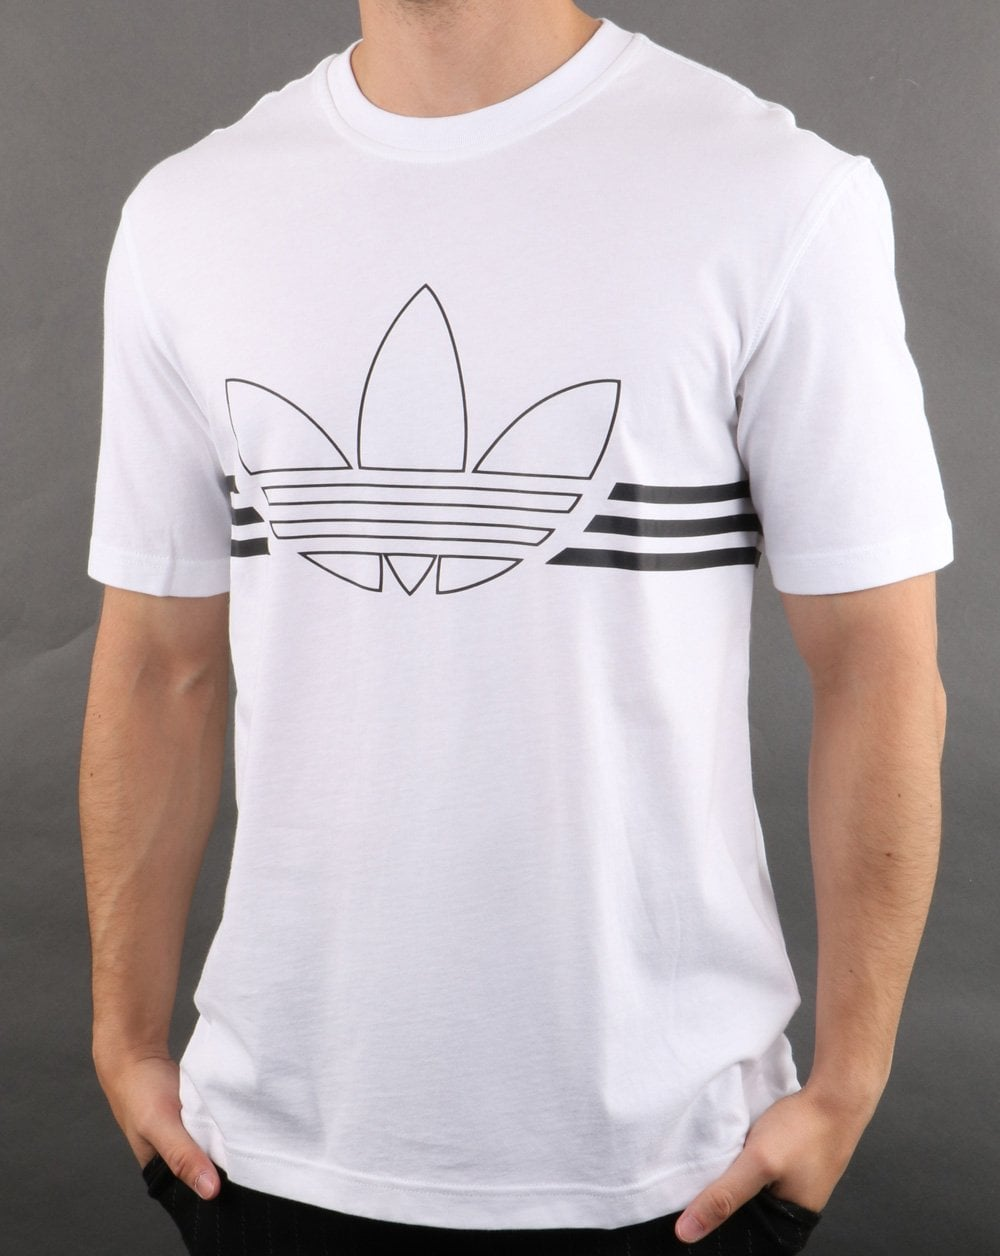 the cheapest hot sales wide varieties Adidas Originals Outline Trefoil T Shirt White